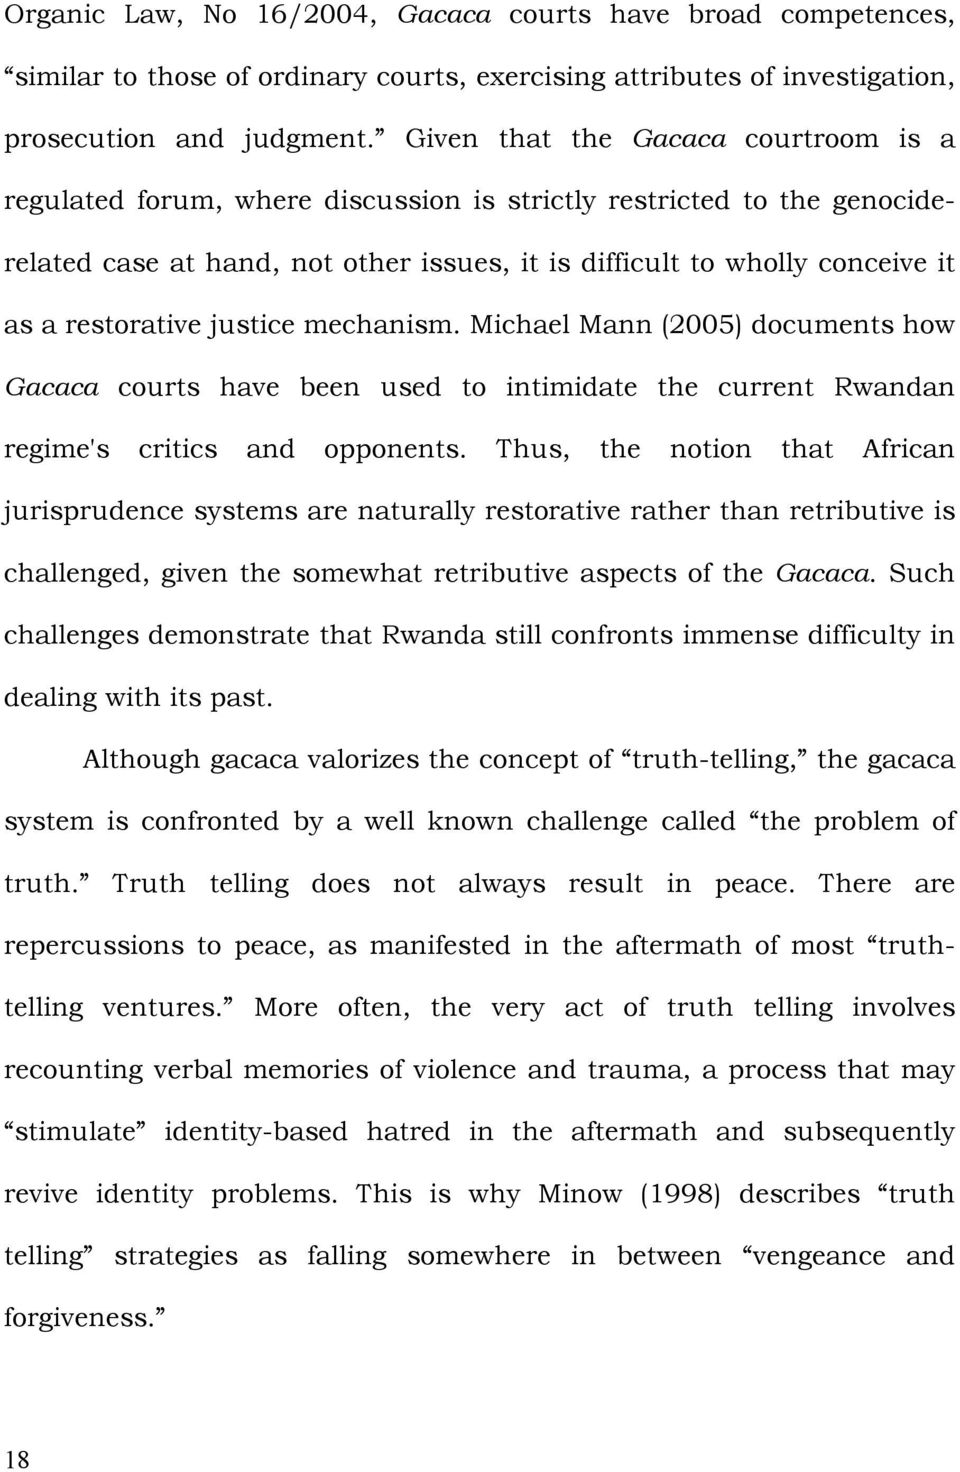 restorative justice mechanism. Michael Mann (2005) documents how Gacaca courts have been used to intimidate the current Rwandan regime's critics and opponents.